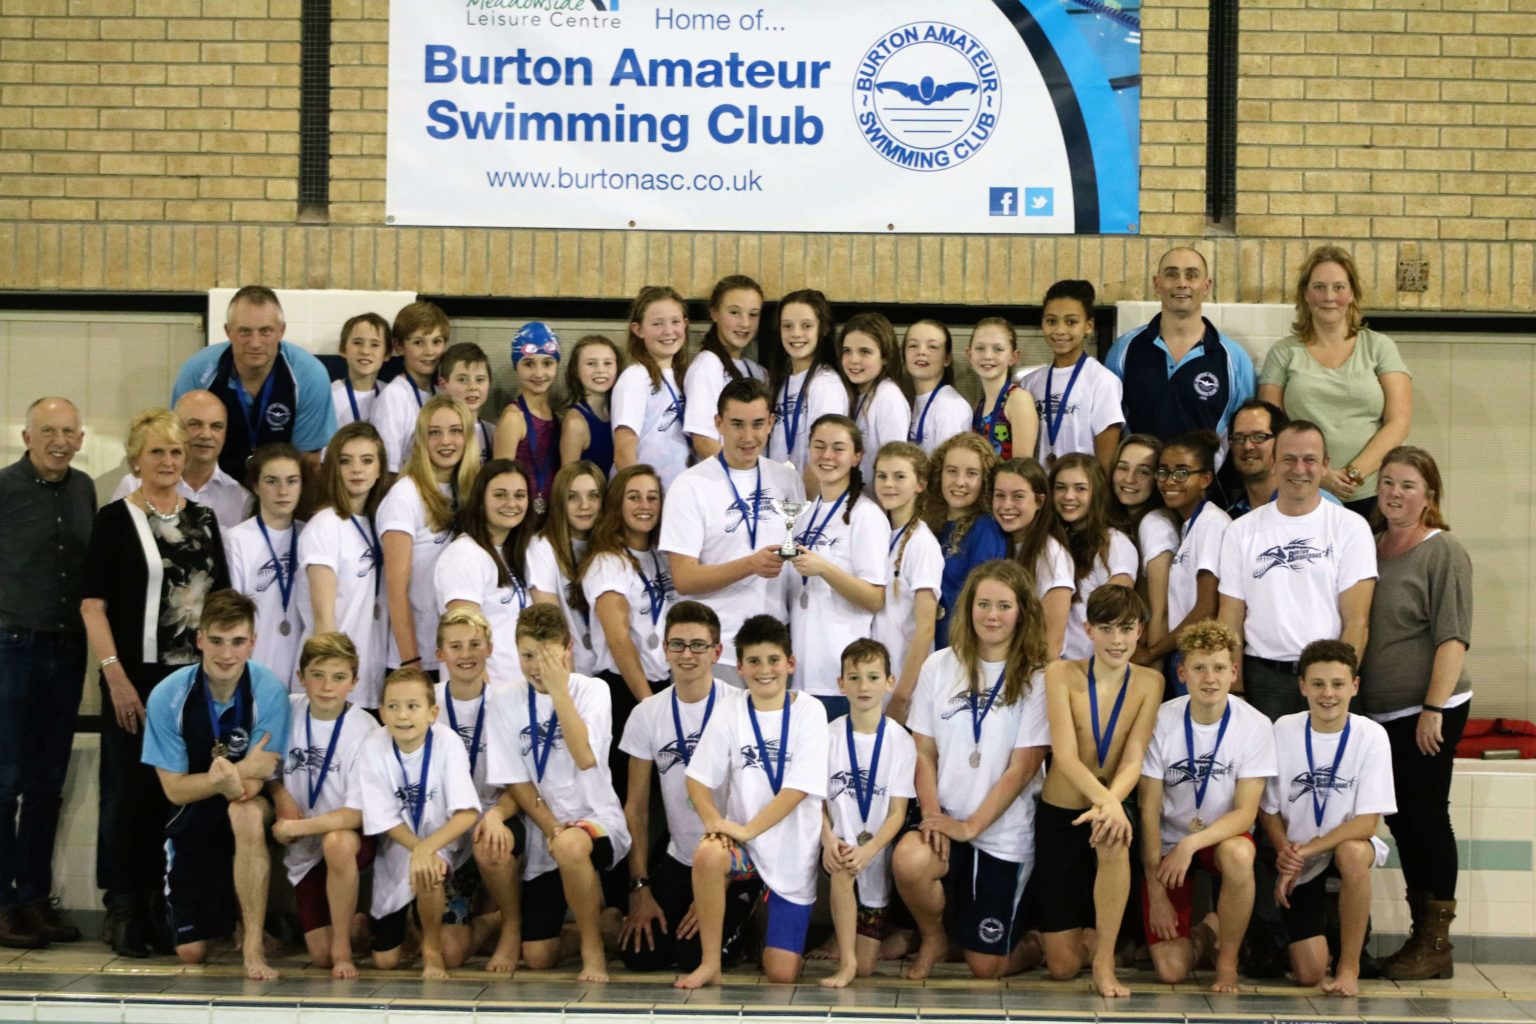 Burton Amateur Swimming Club is looking for companies and individuals to sponsor a swimmer for a year.